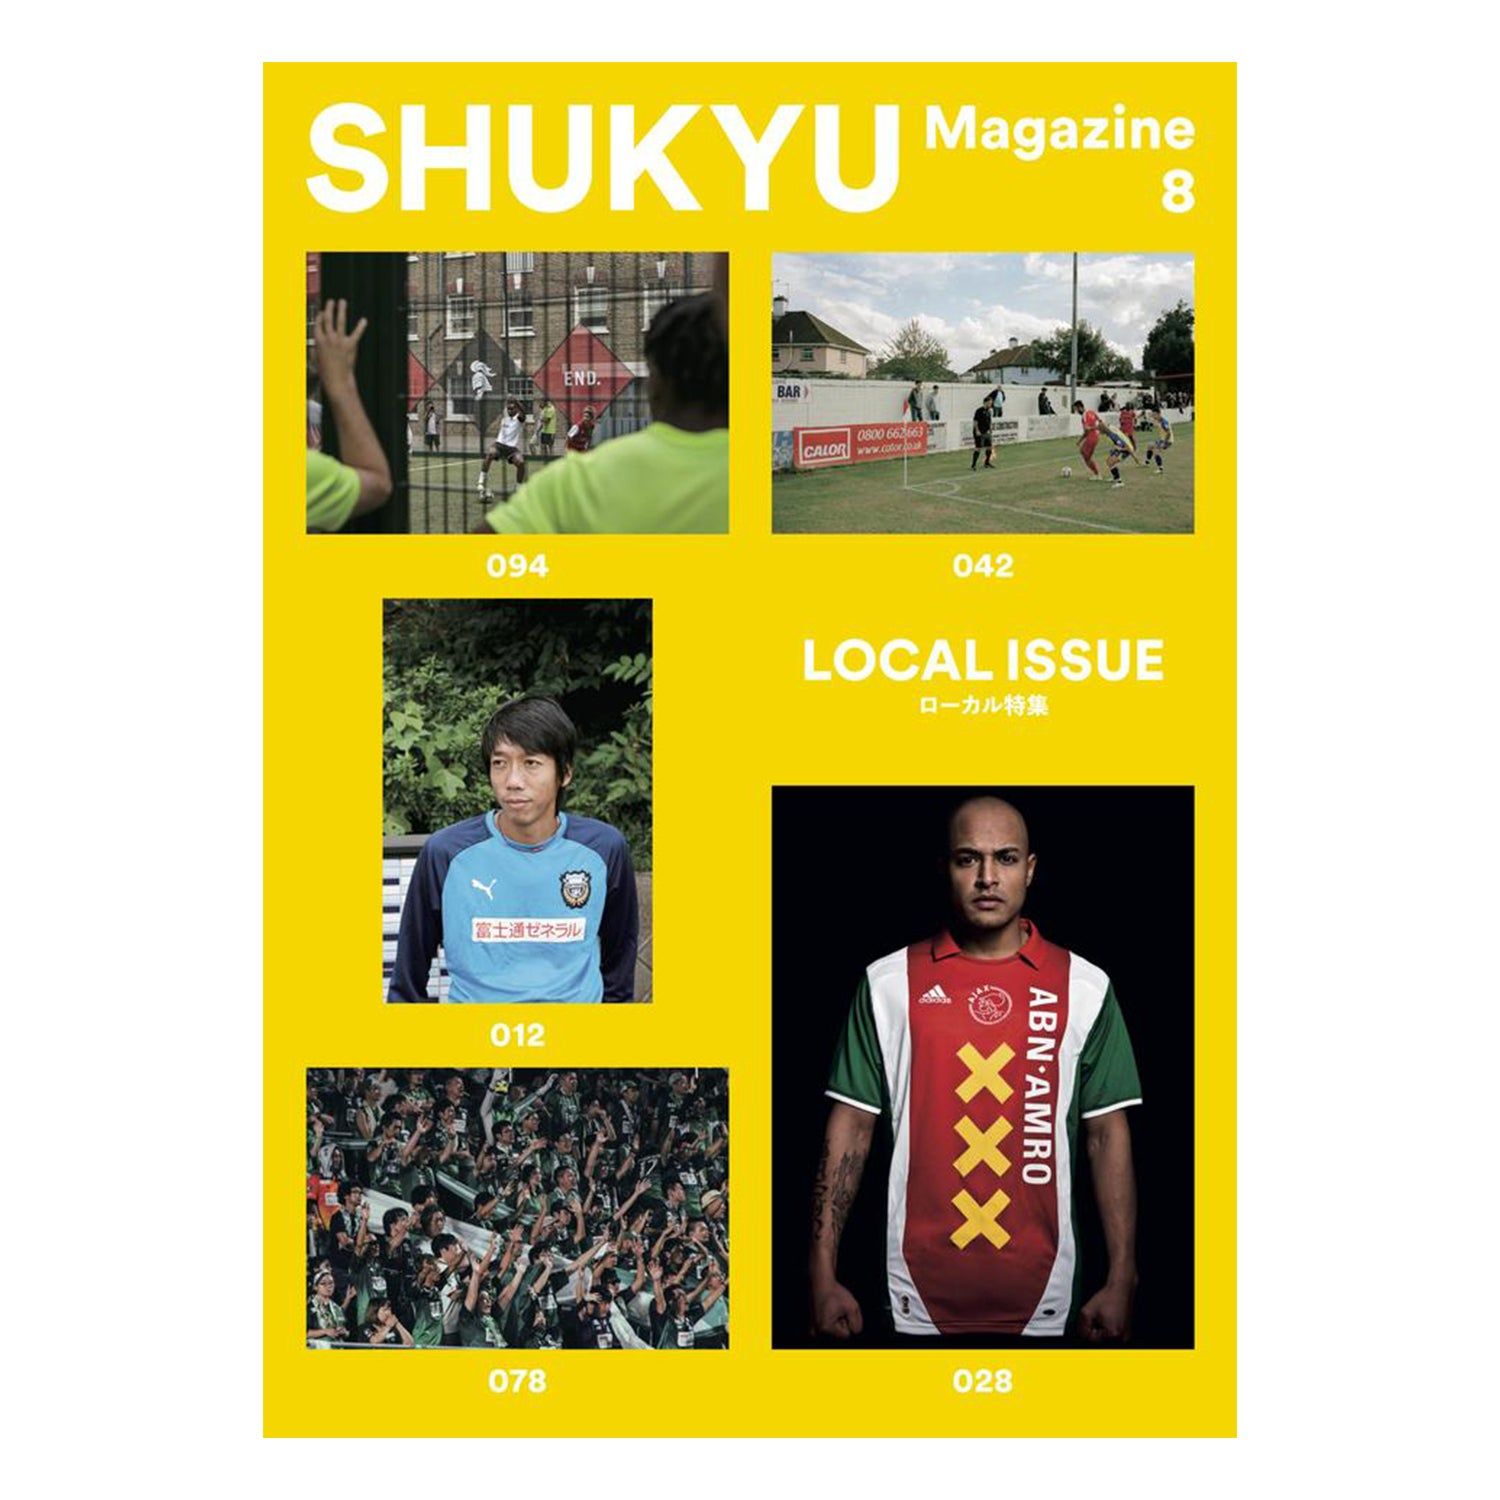 Shukyu Magazine: Local Issue (Issue 8)